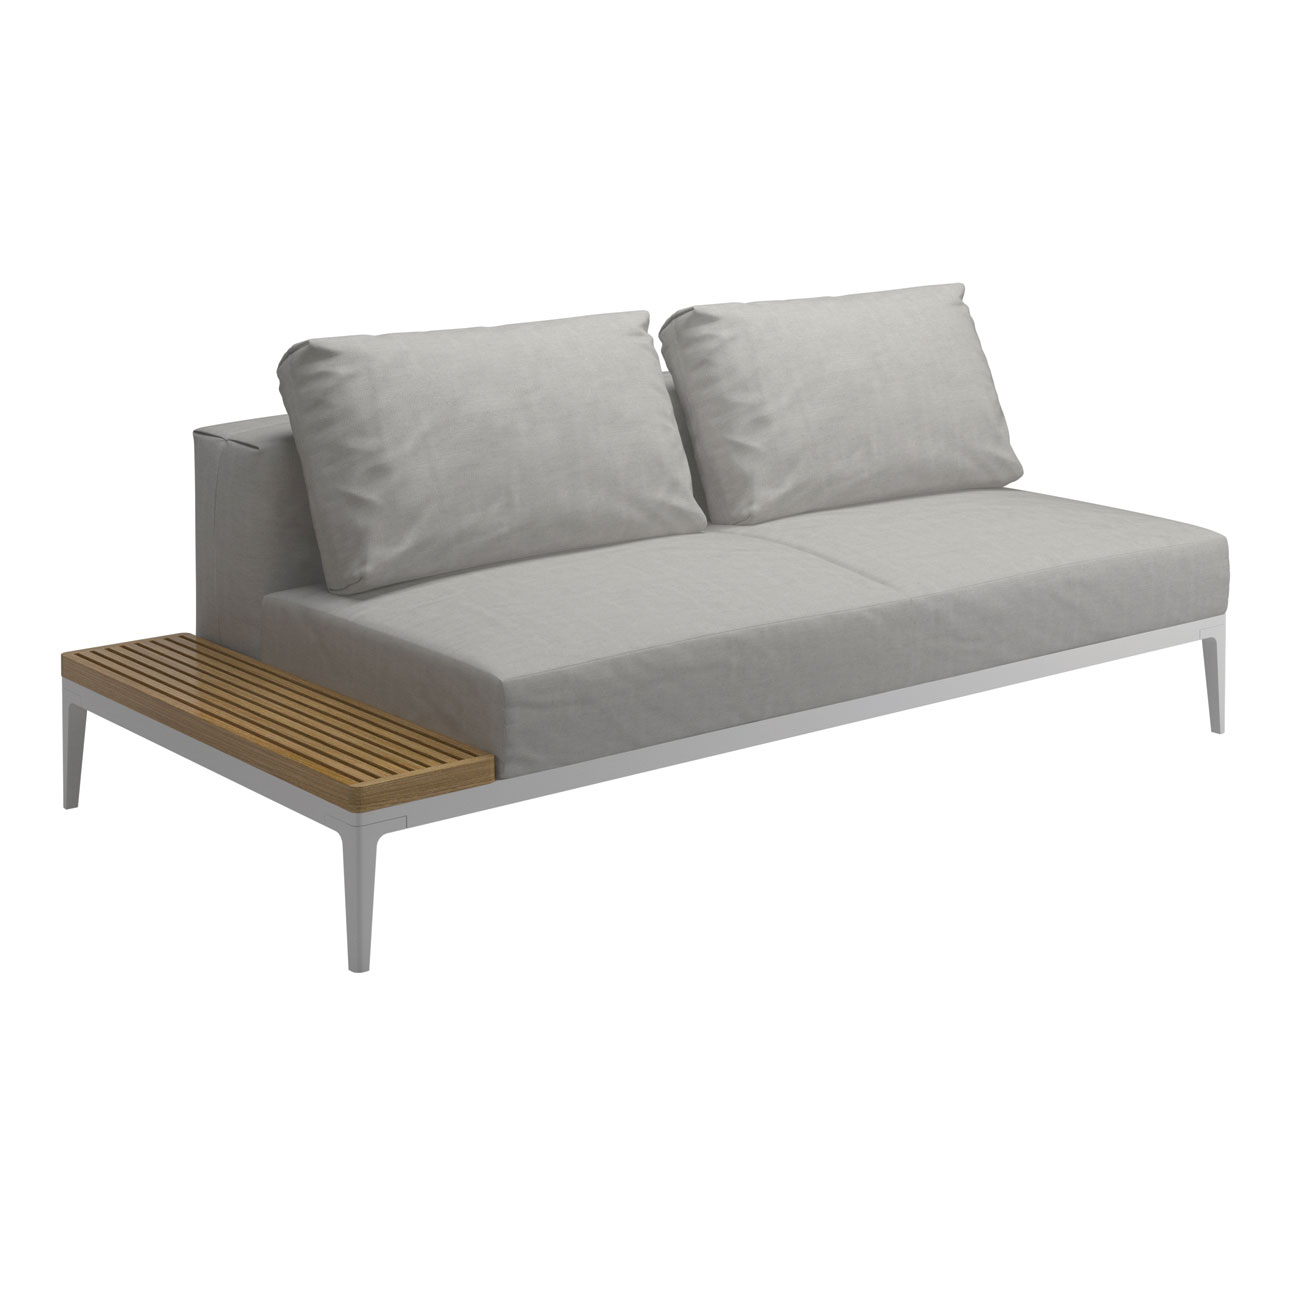 Gloster grid modular sofa end table unit luxury for Sofa modular gris